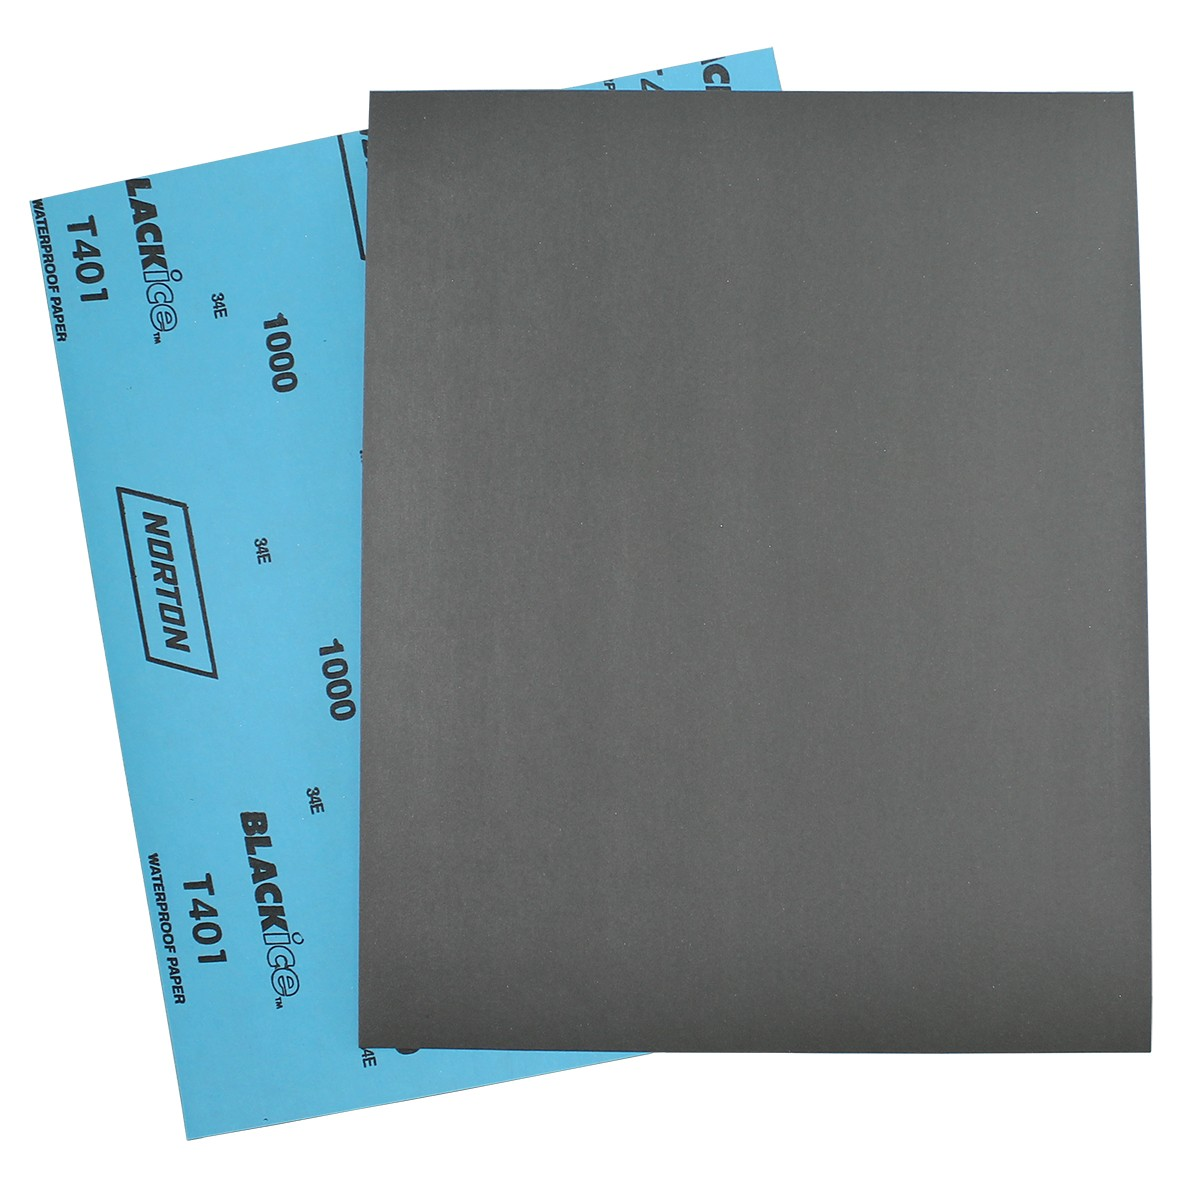 Norton Emery Polishing Paper - 180 Grit